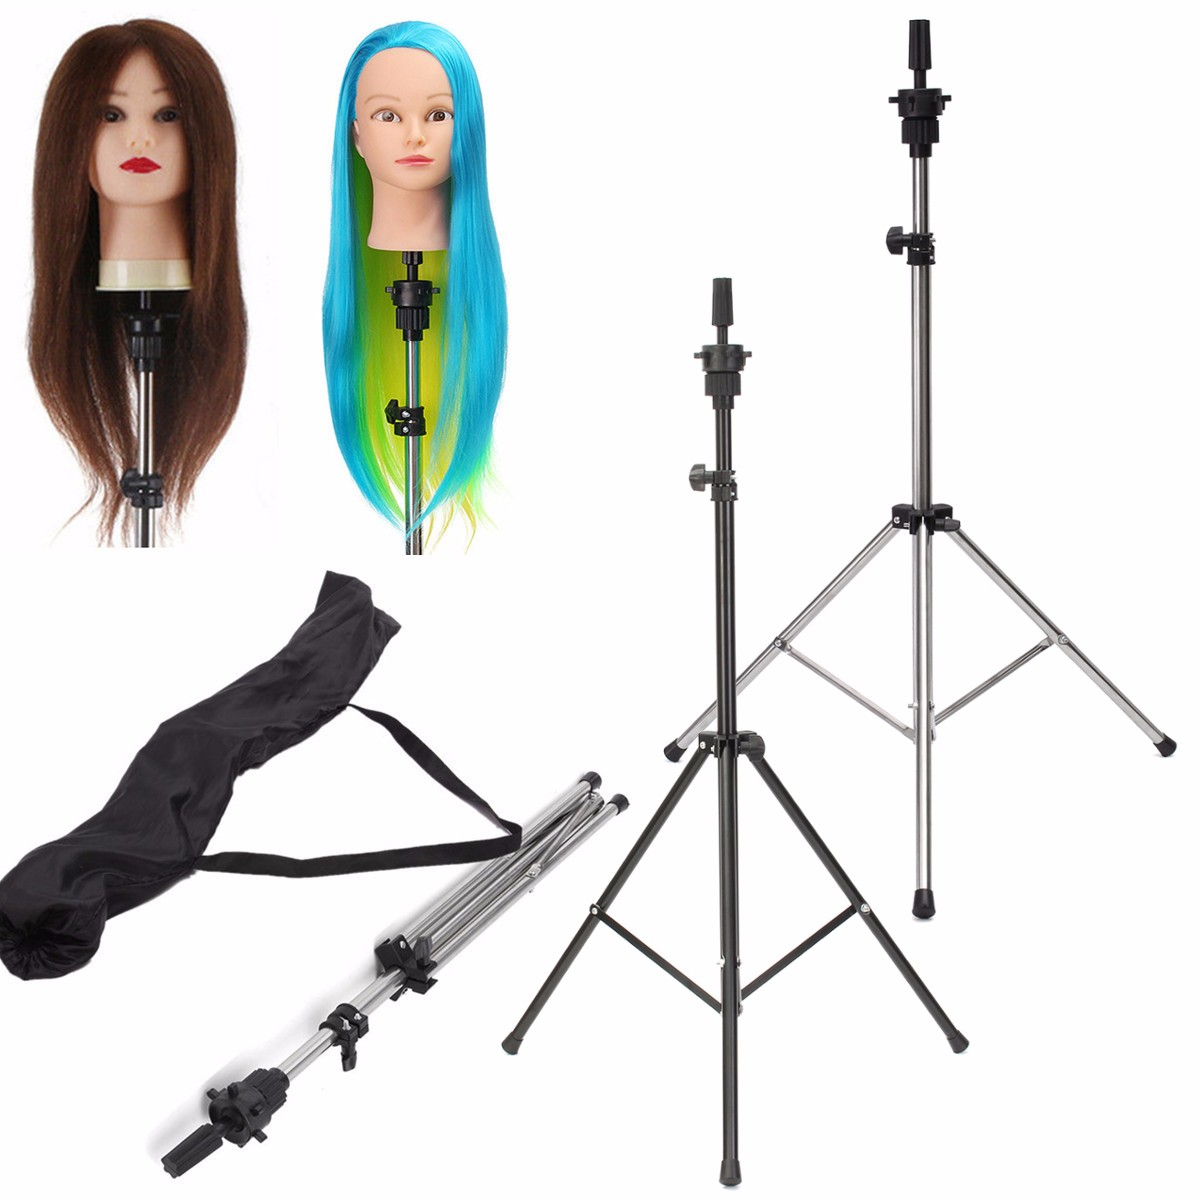 Adjustable Tripod Stand Holder for Hairdressing Training Practice Head + Bag USA